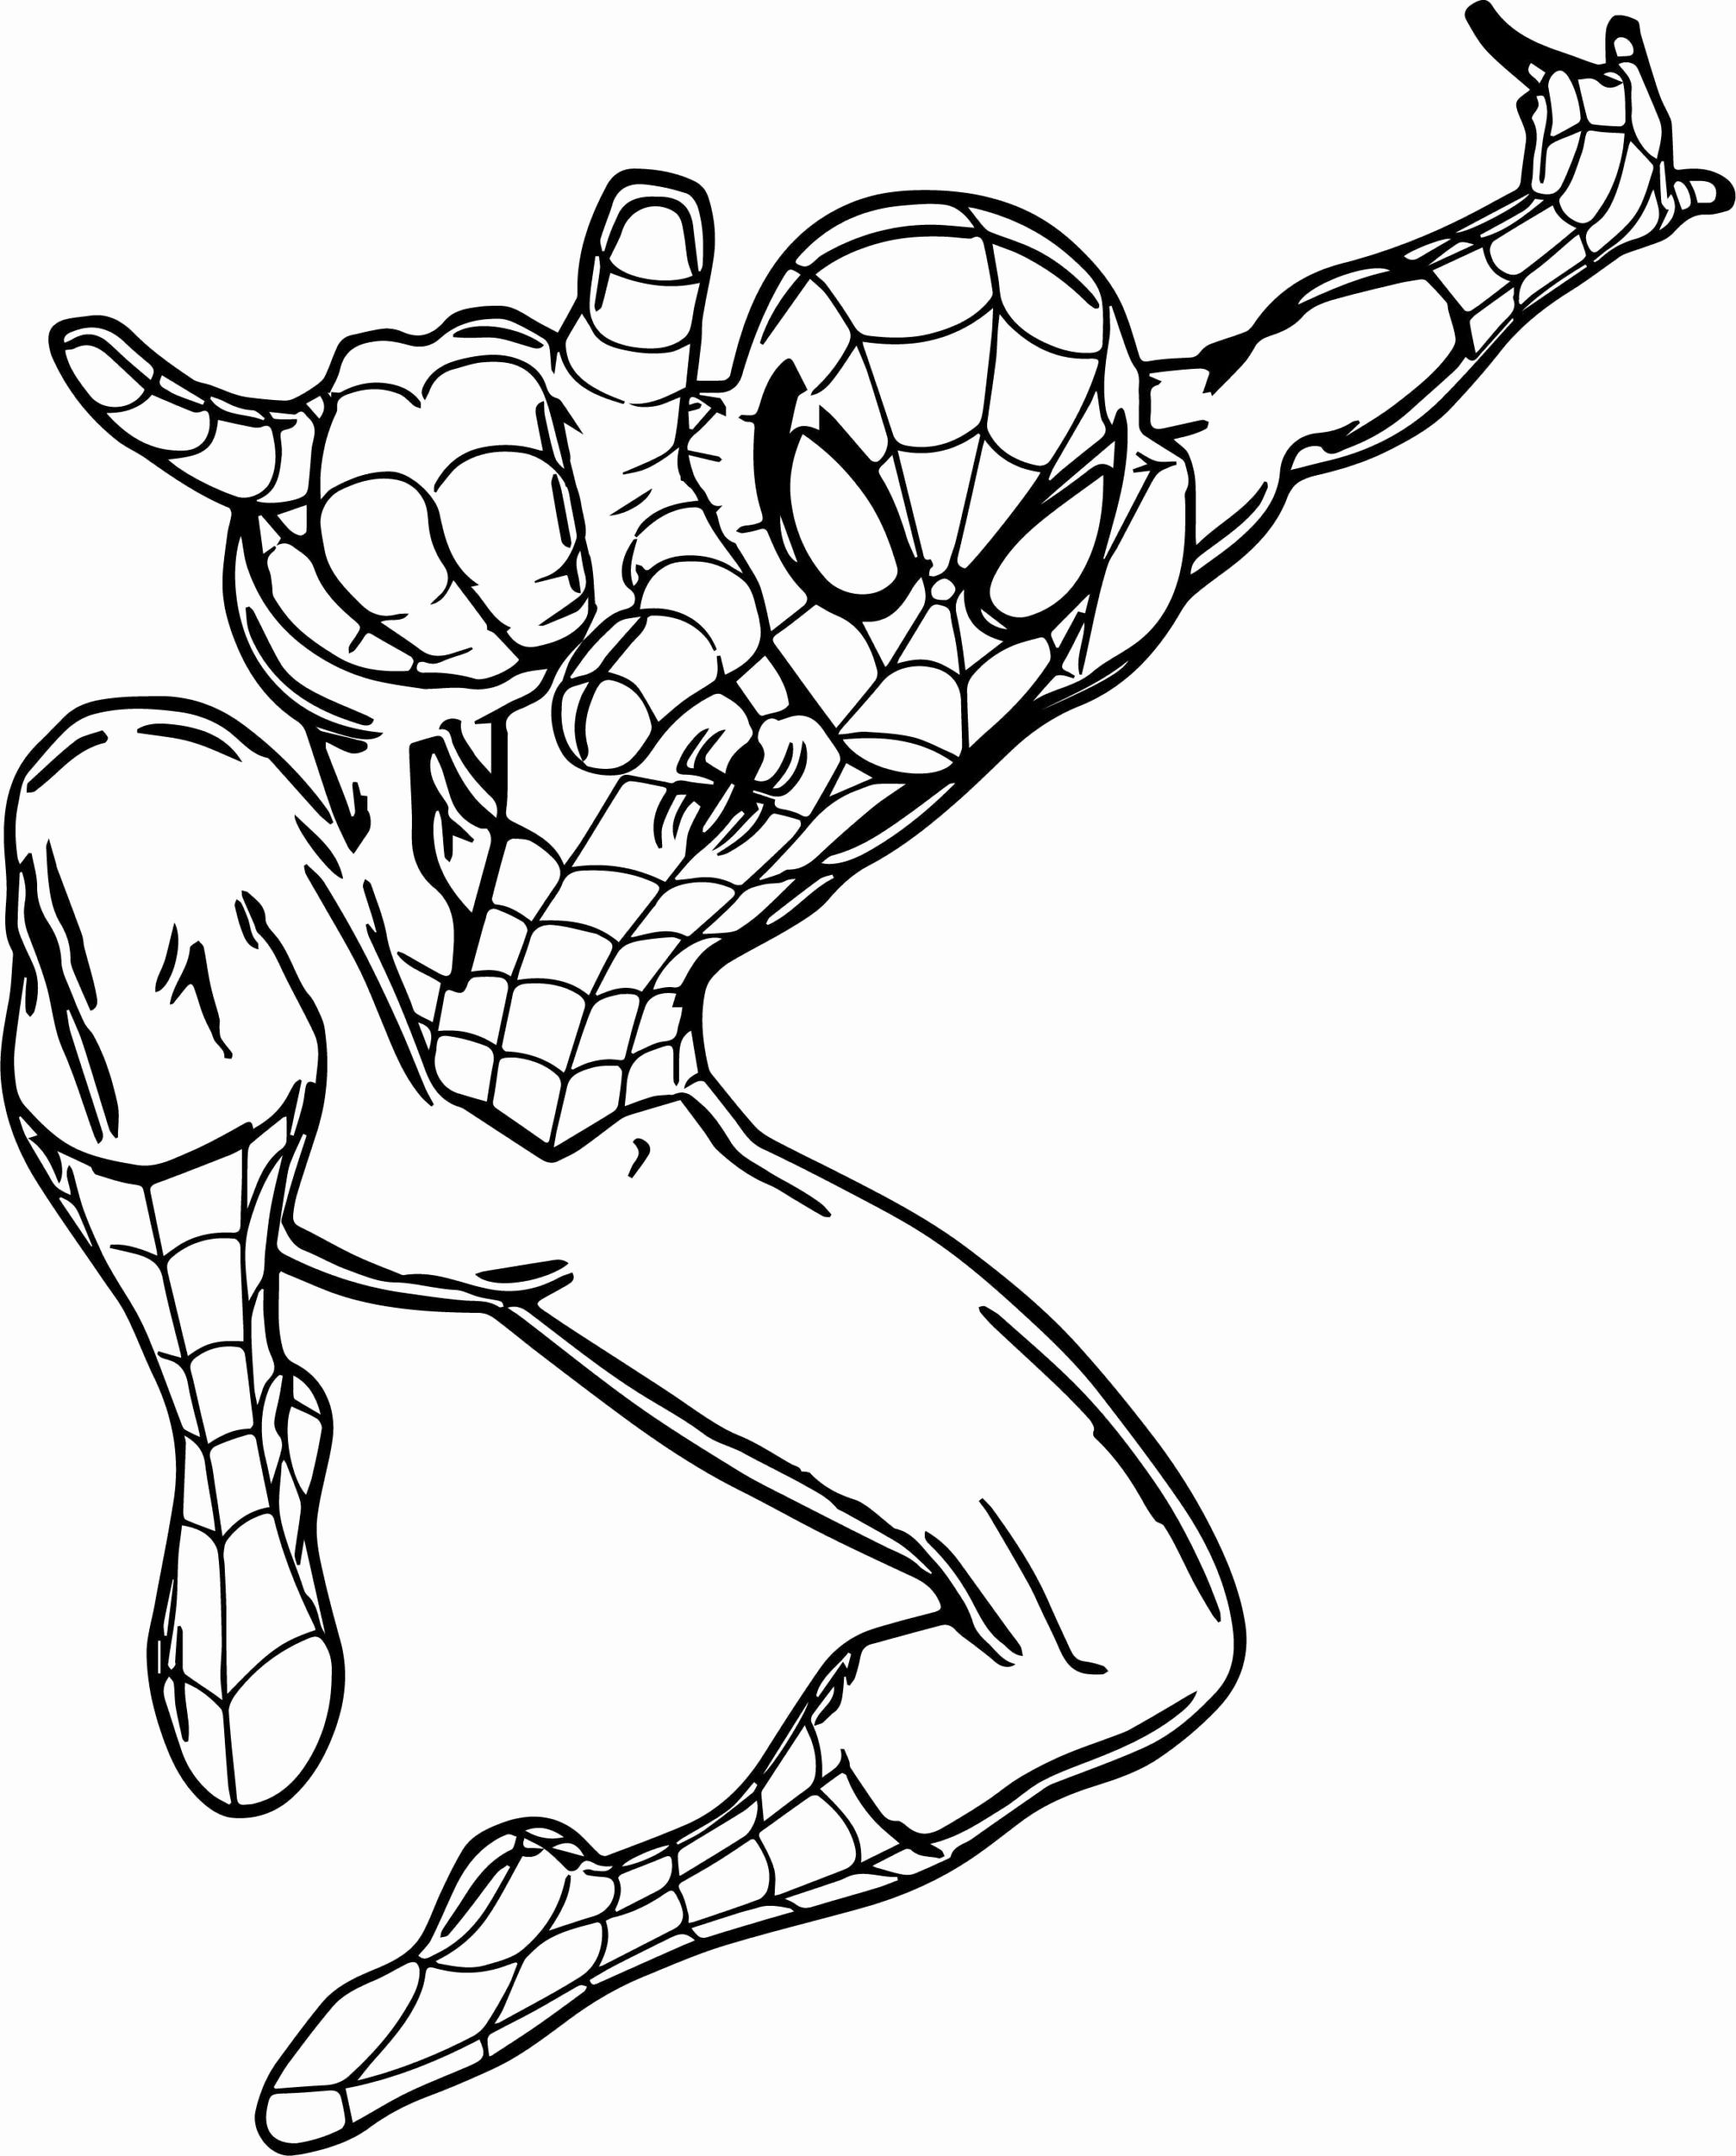 Coloring Pages For Kids Spiderman Spiderman Coloring Avengers Coloring Pages Superhero Coloring Pages